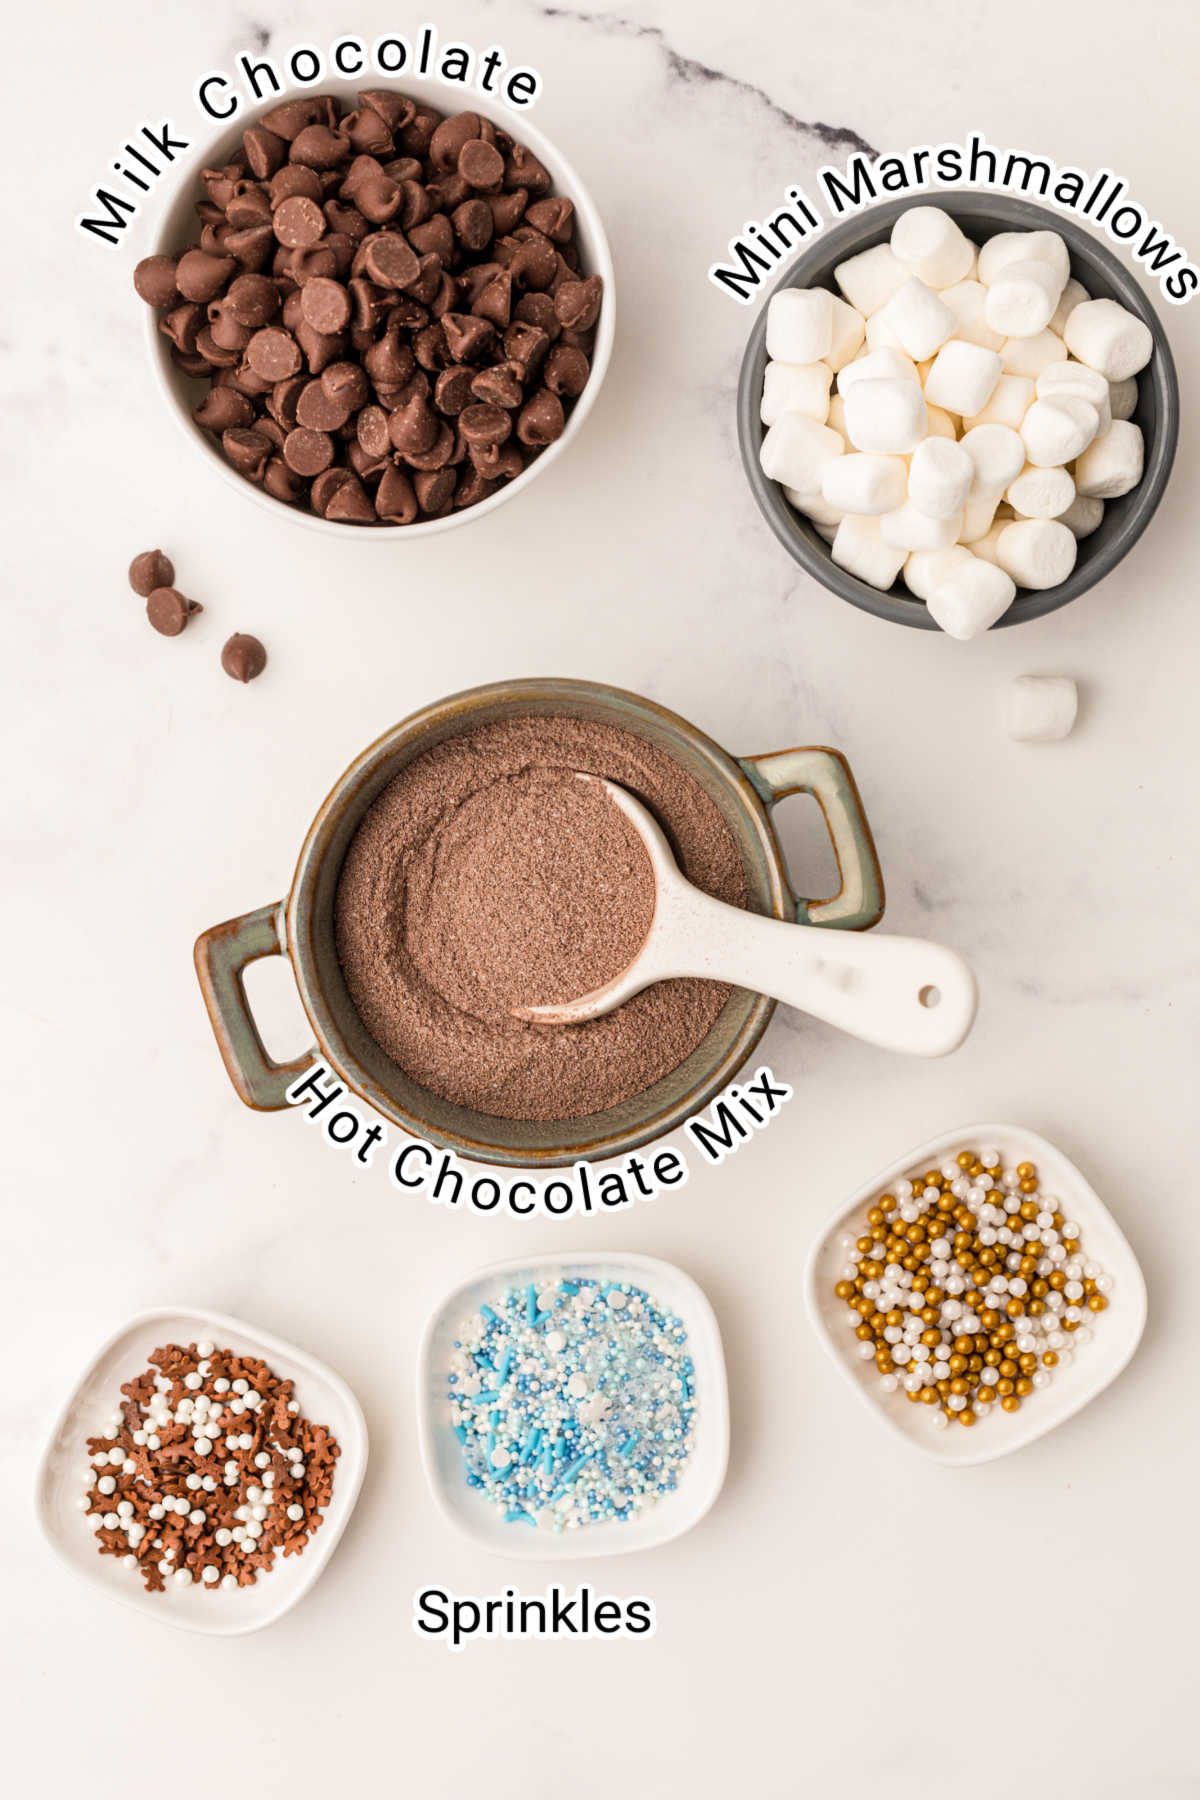 ingredients for hot chocolate balls laid out with their description typed over the top